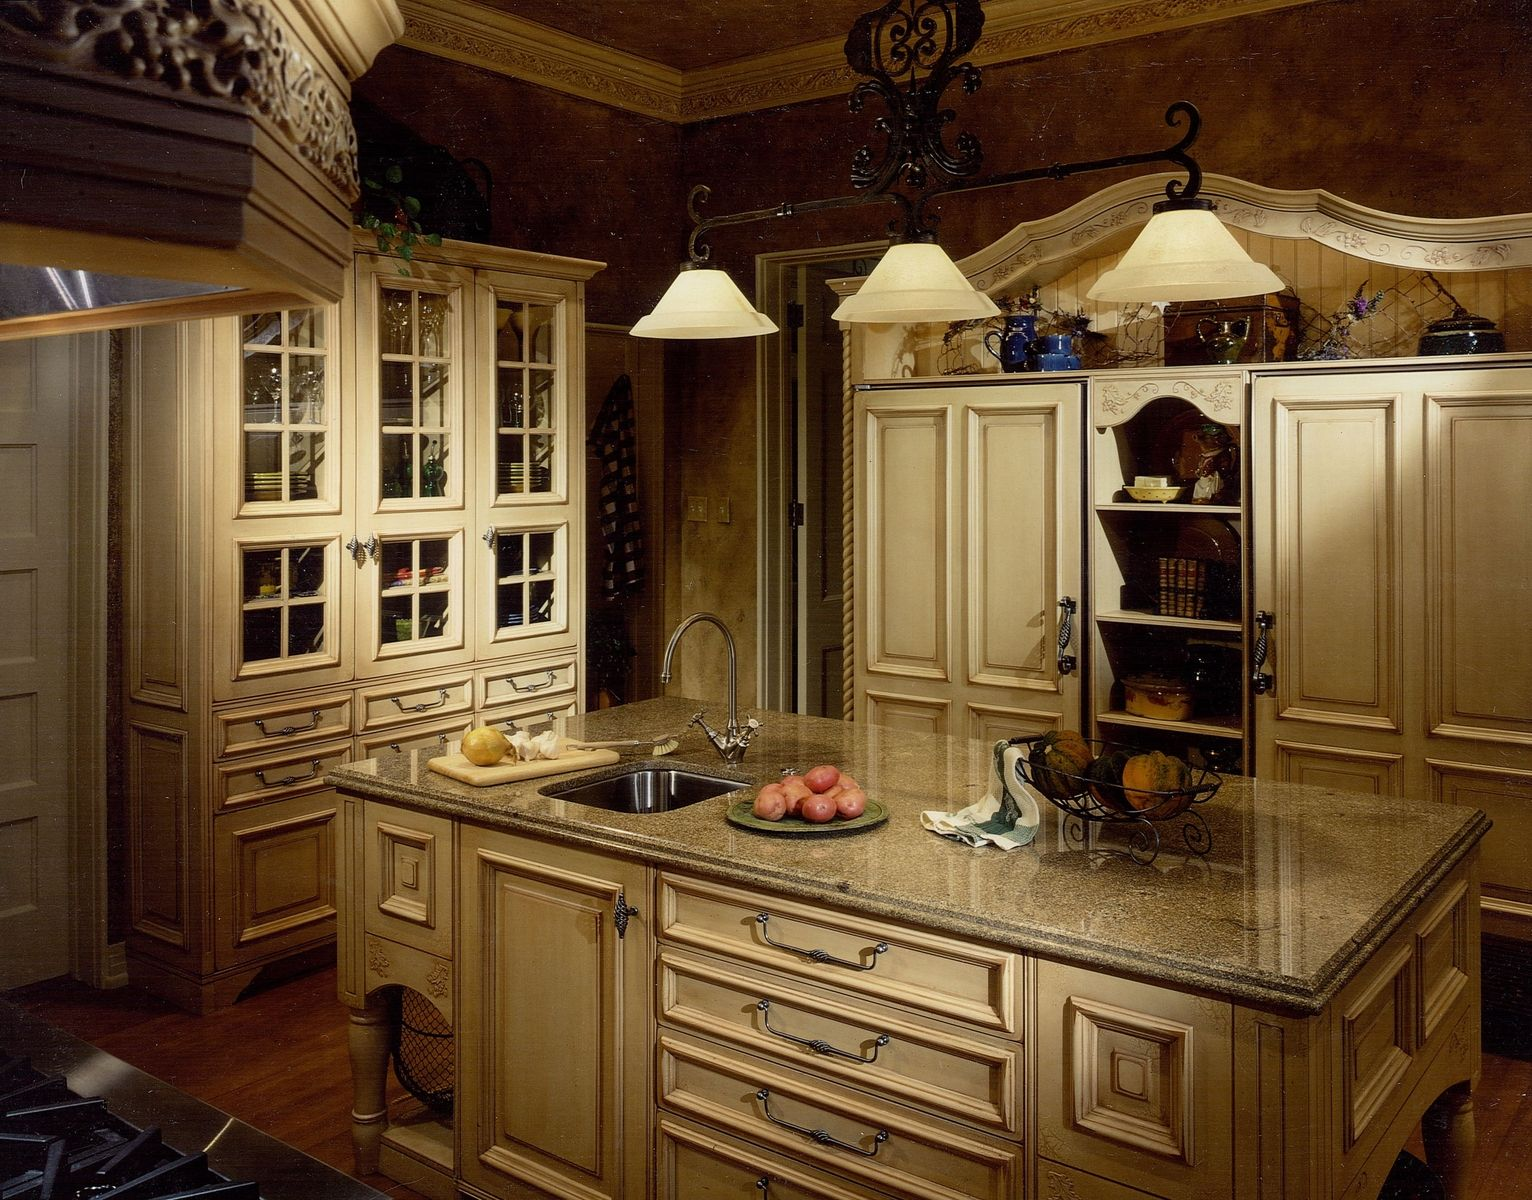 french country kitchen cabinets design photo - 1